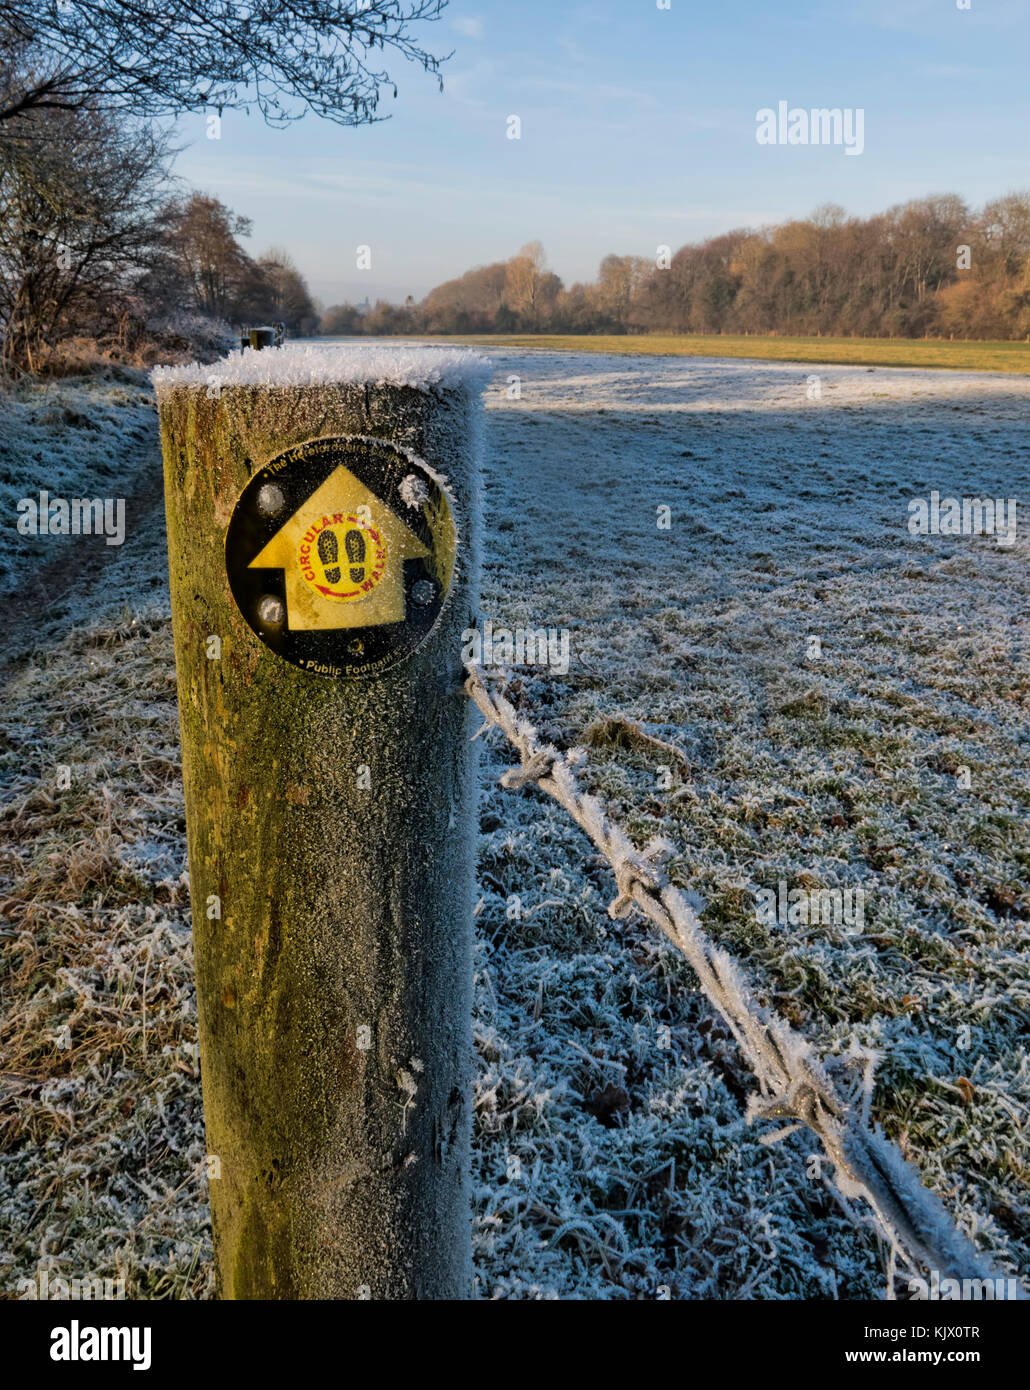 winter, frosty scene showing a fencepost with a footpath marker - Stock Image